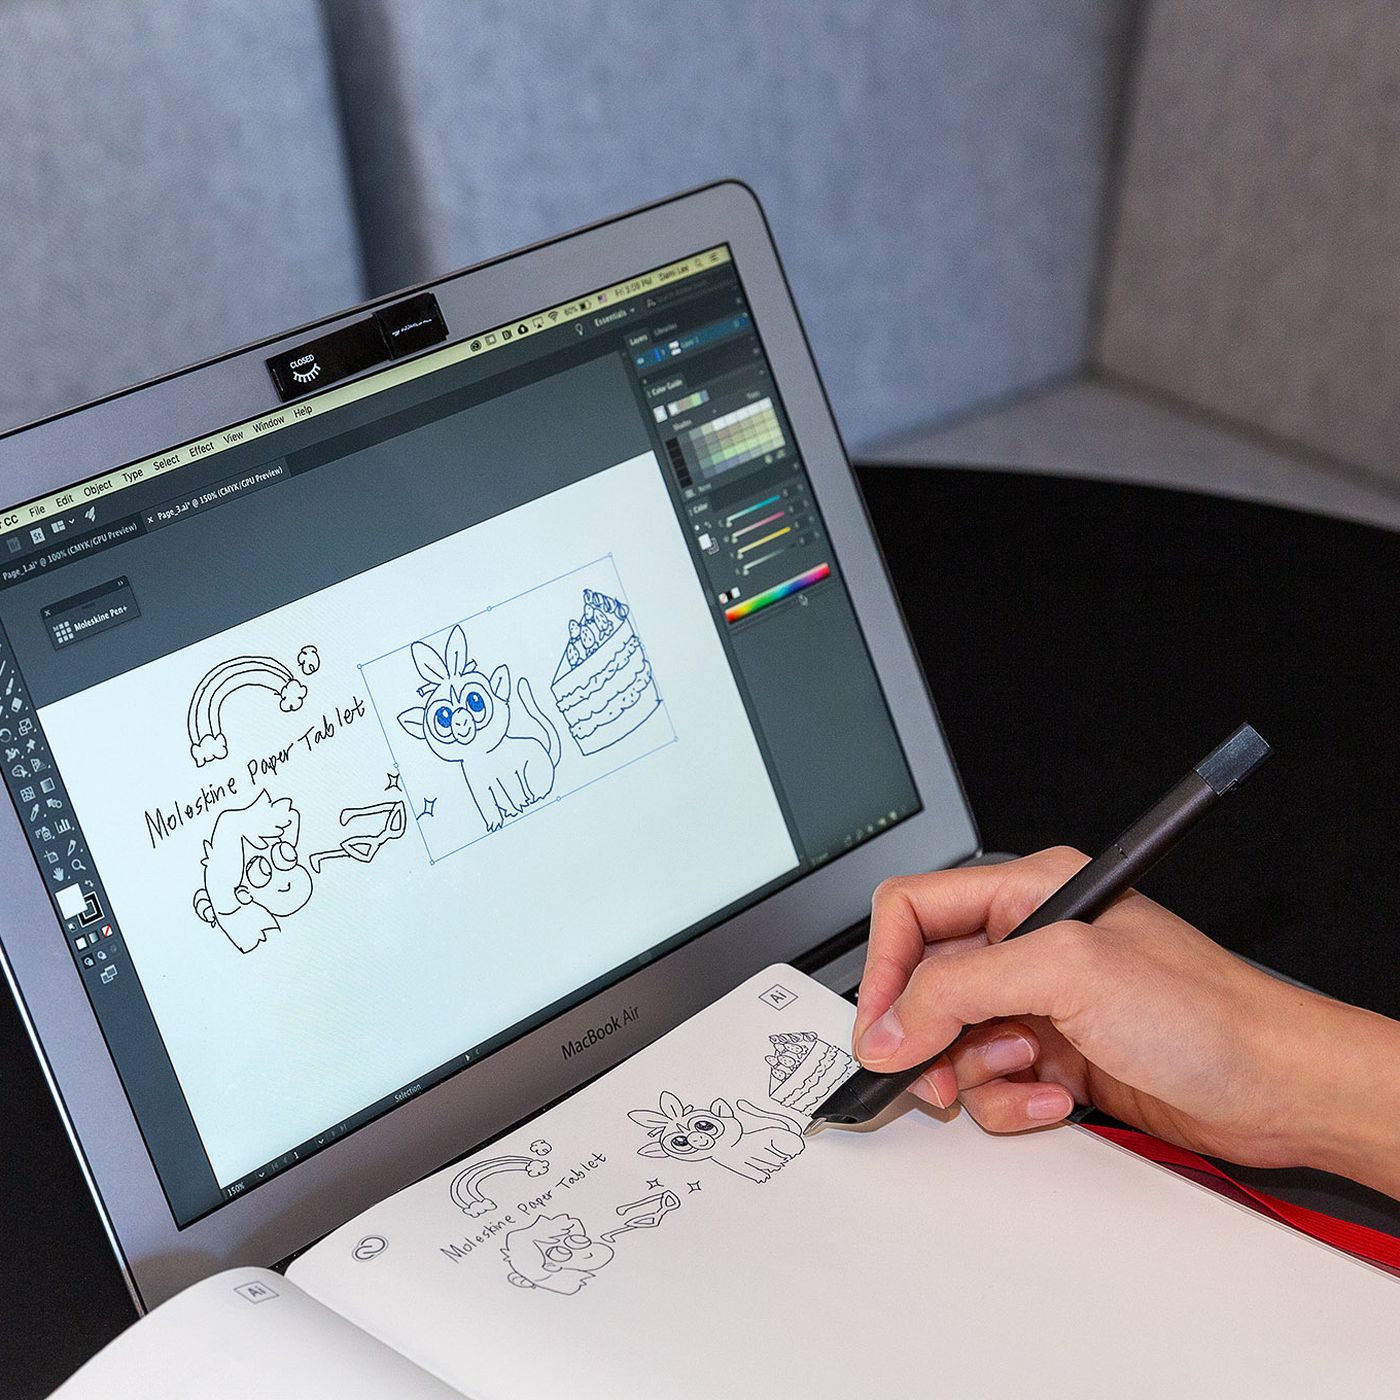 theverge.com - Dami Lee - Moleskine's new smart notebook vectorizes lines in Adobe Illustrator in real time